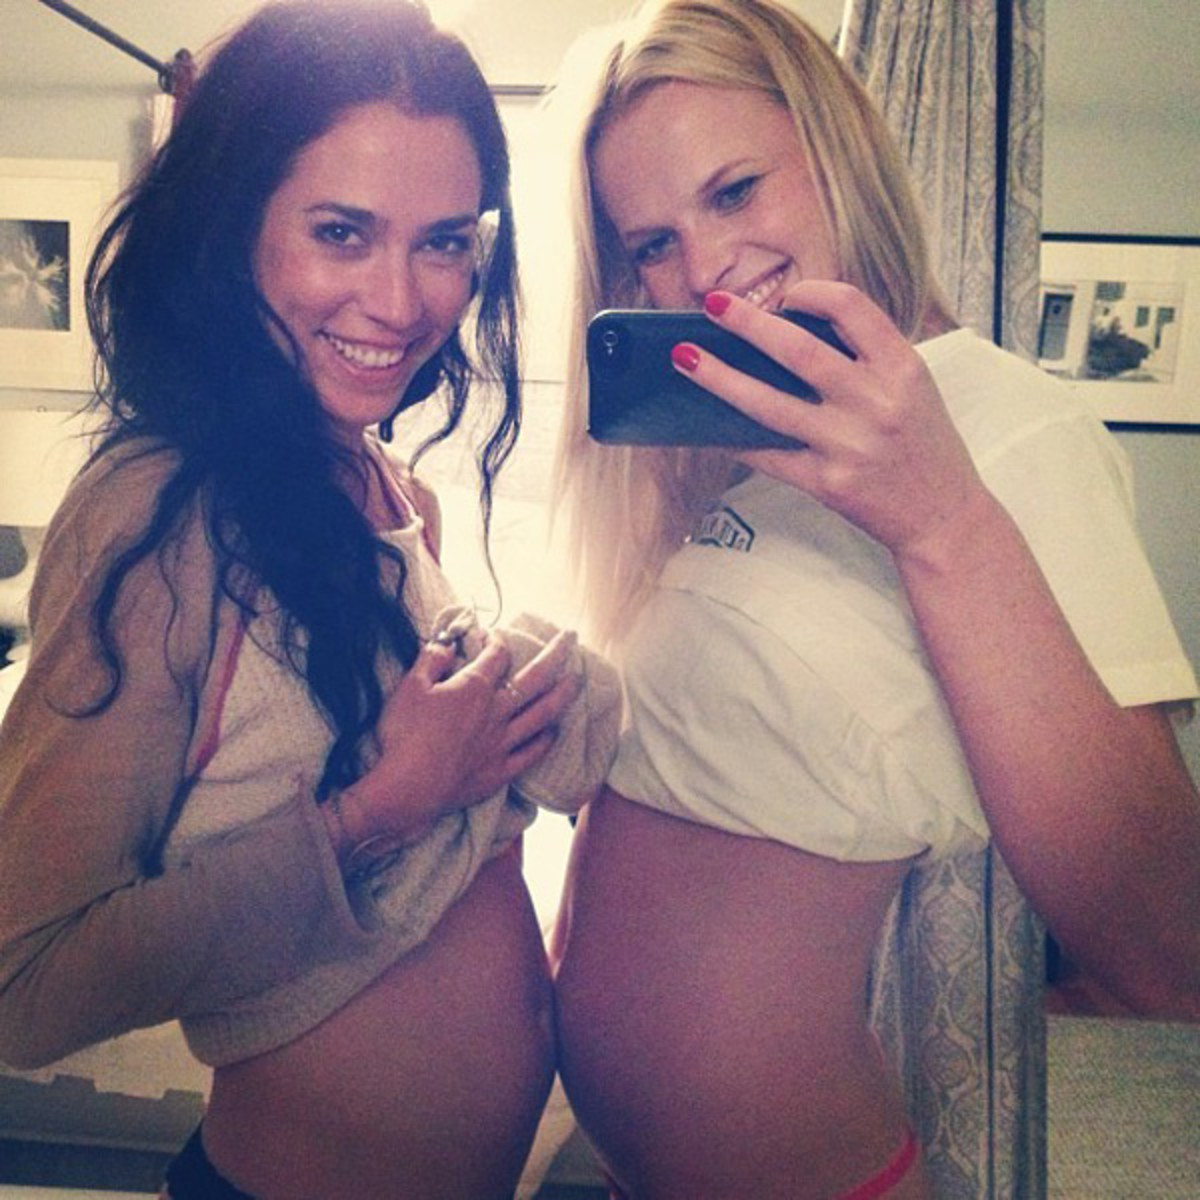 Tara Curran and Anne V :: @annev_official